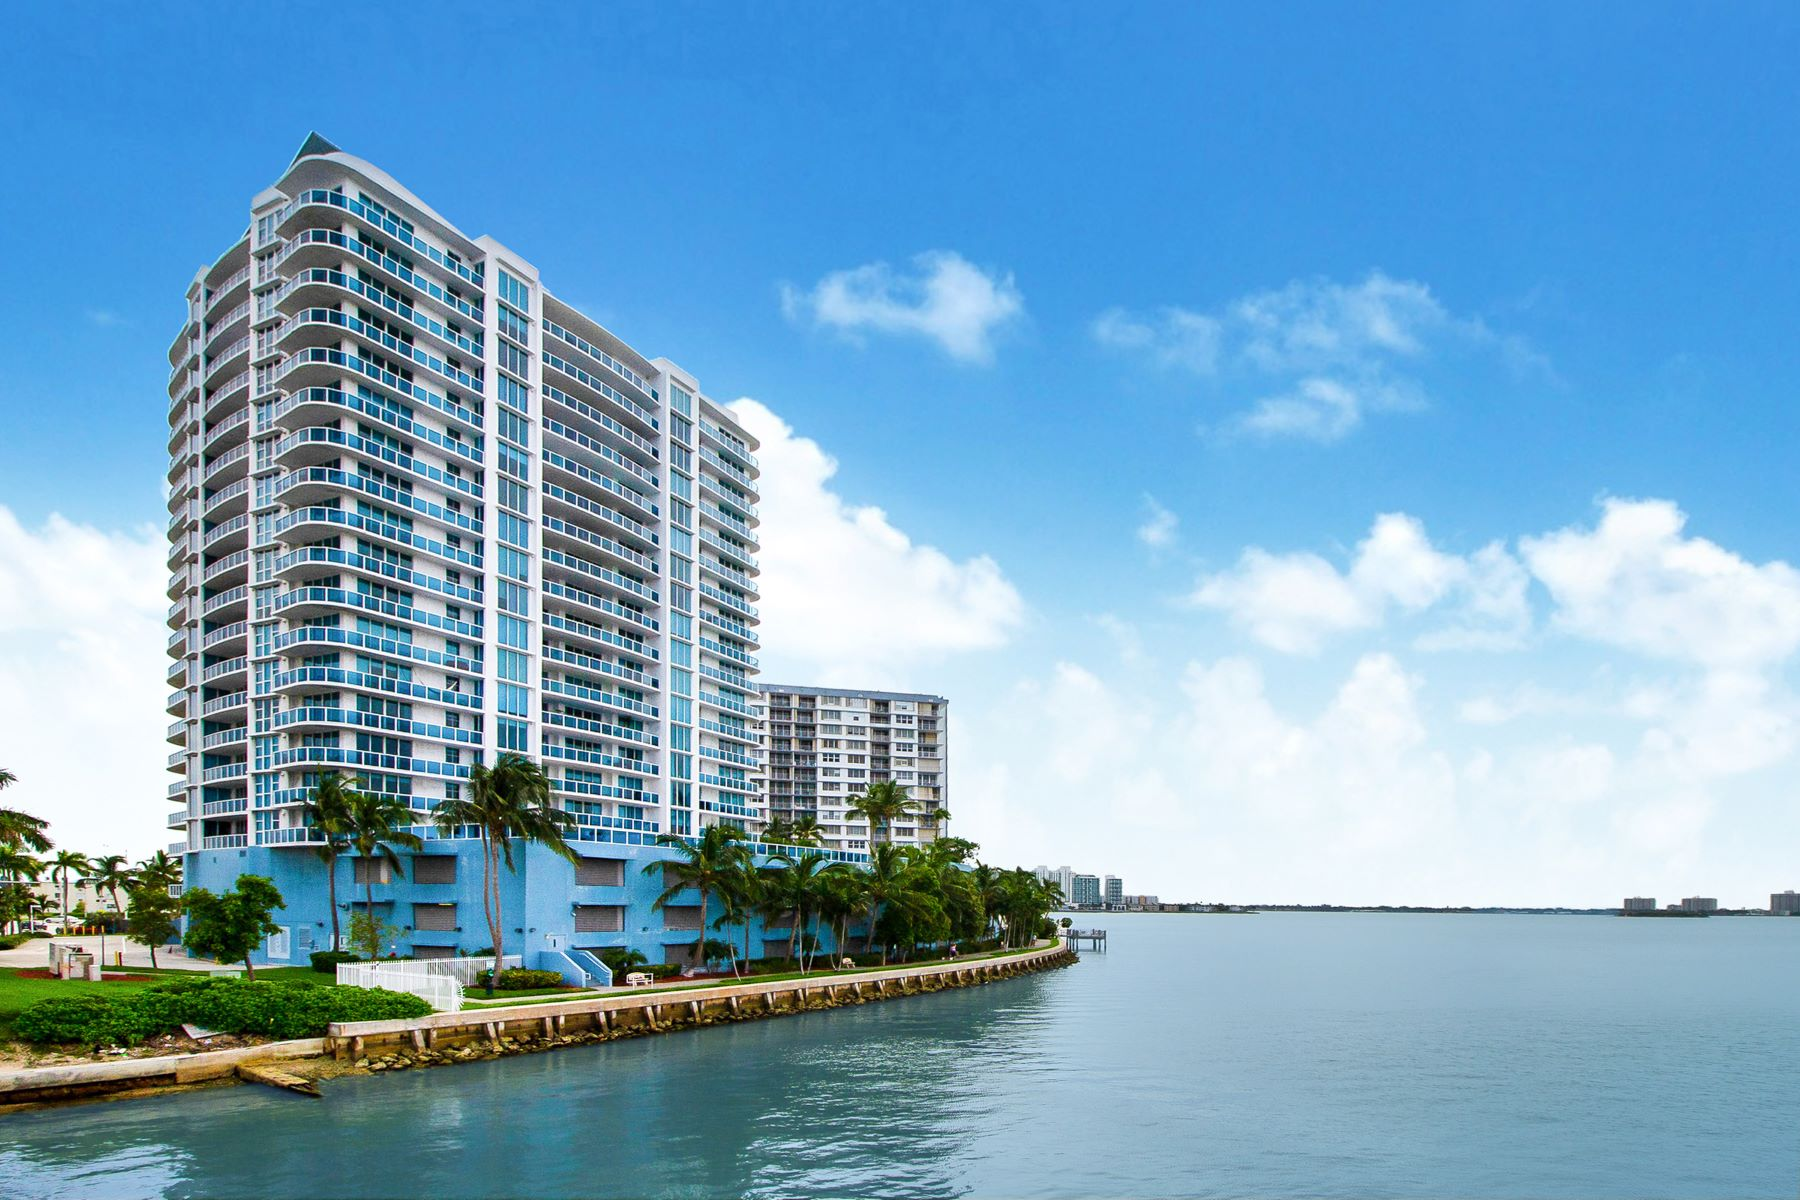 condominiums for Active at 1881 79th St Cswy PH2104 North Bay Village, Florida 33141 United States